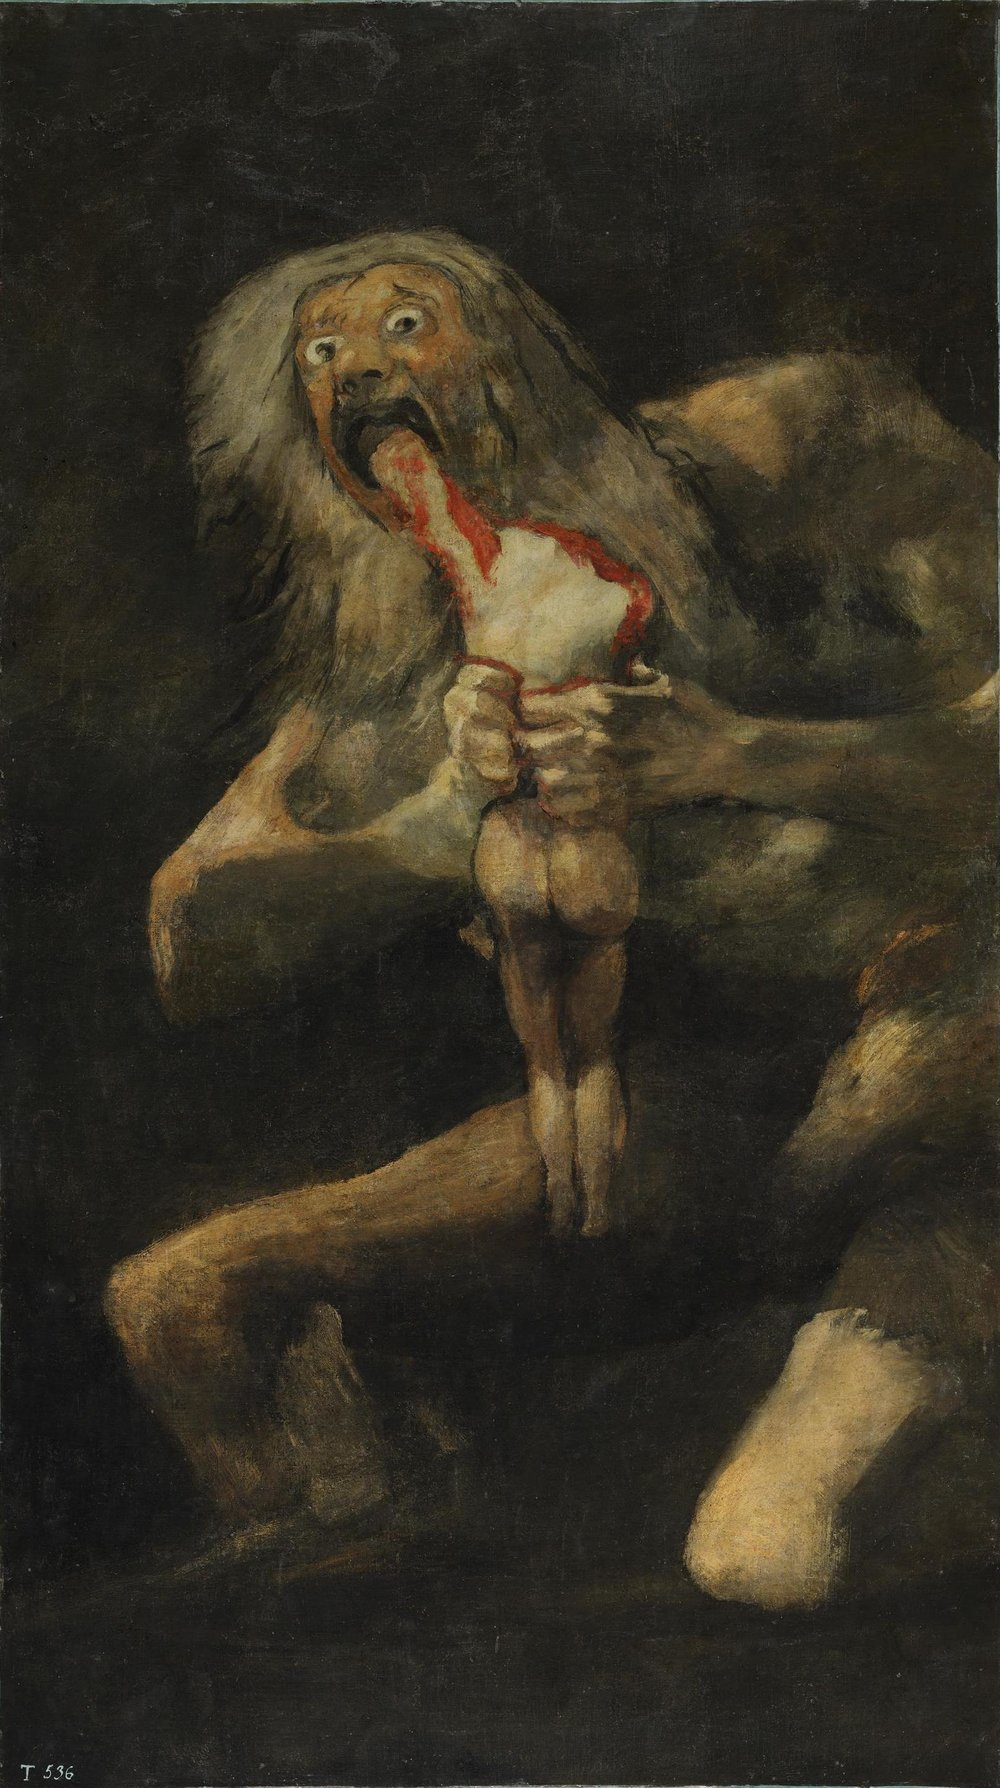 Untitled, known as   Saturn Devouring His Son  ,  Devoration  or  Saturn Eats His Child, oil on canvas, Francisco de Goya, 1819-23, Meseo Del Prado